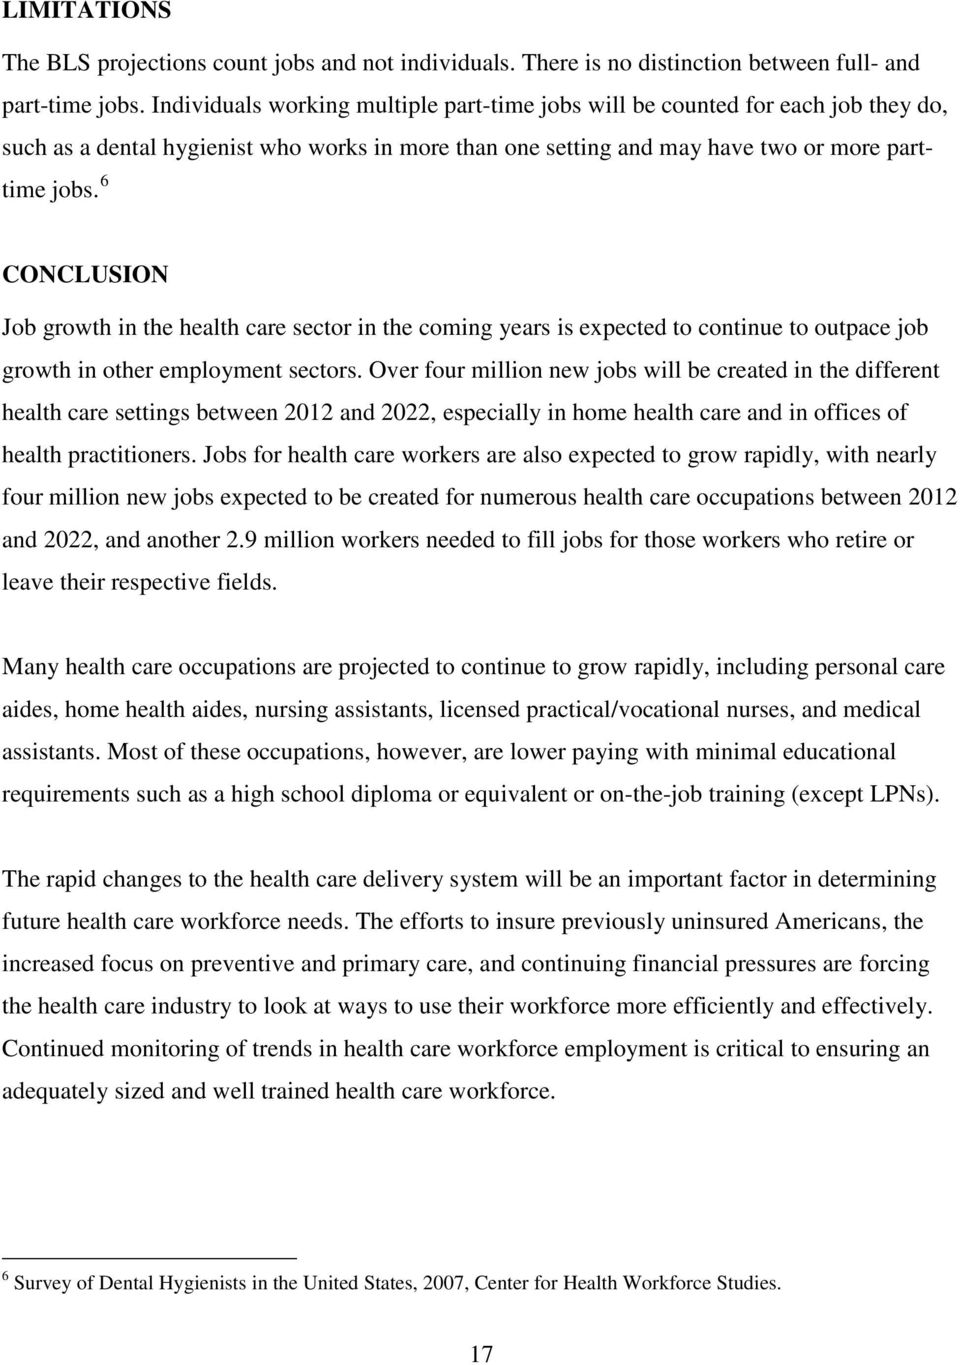 6 CONCLUSION Job growth in the health care sector in the coming years is expected to continue to outpace job growth in other employment sectors.